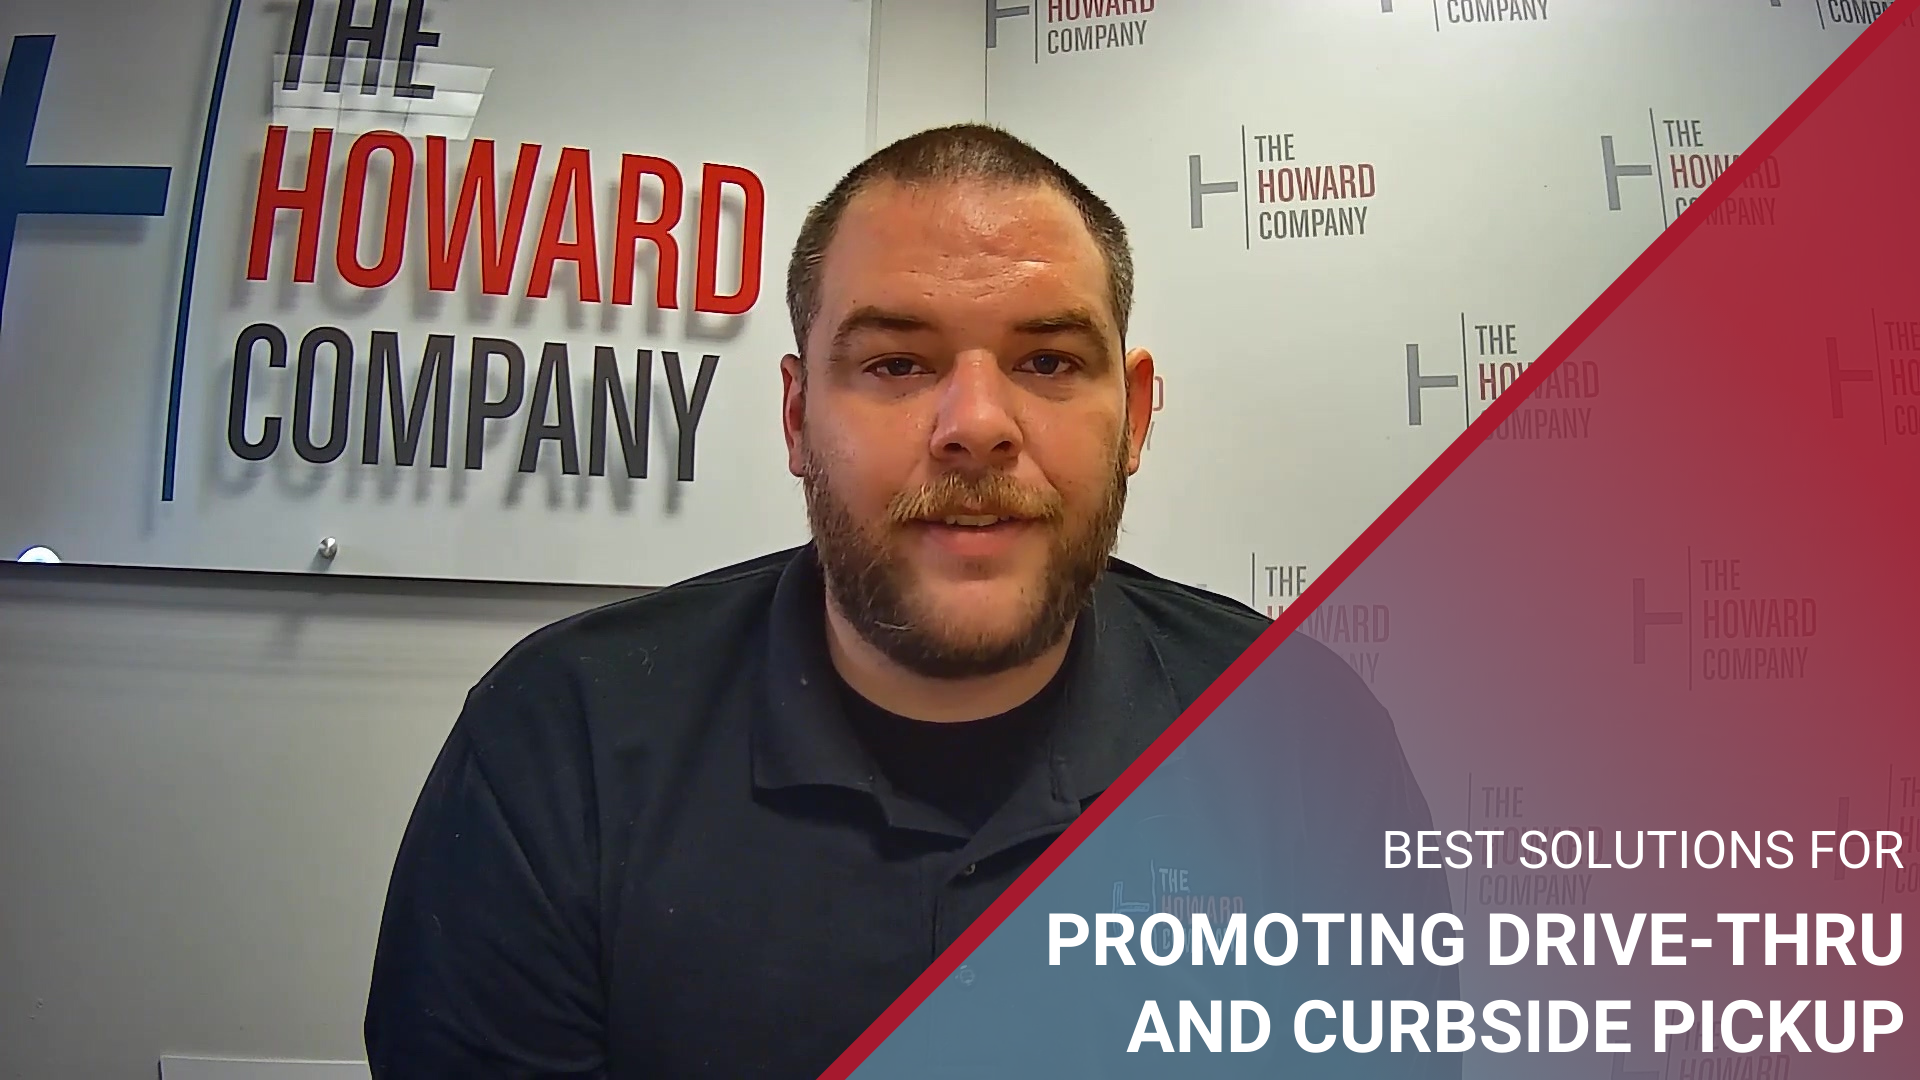 Matthew Johnson - Reaching More Customers with Drive-Thru and Curbside Pickup